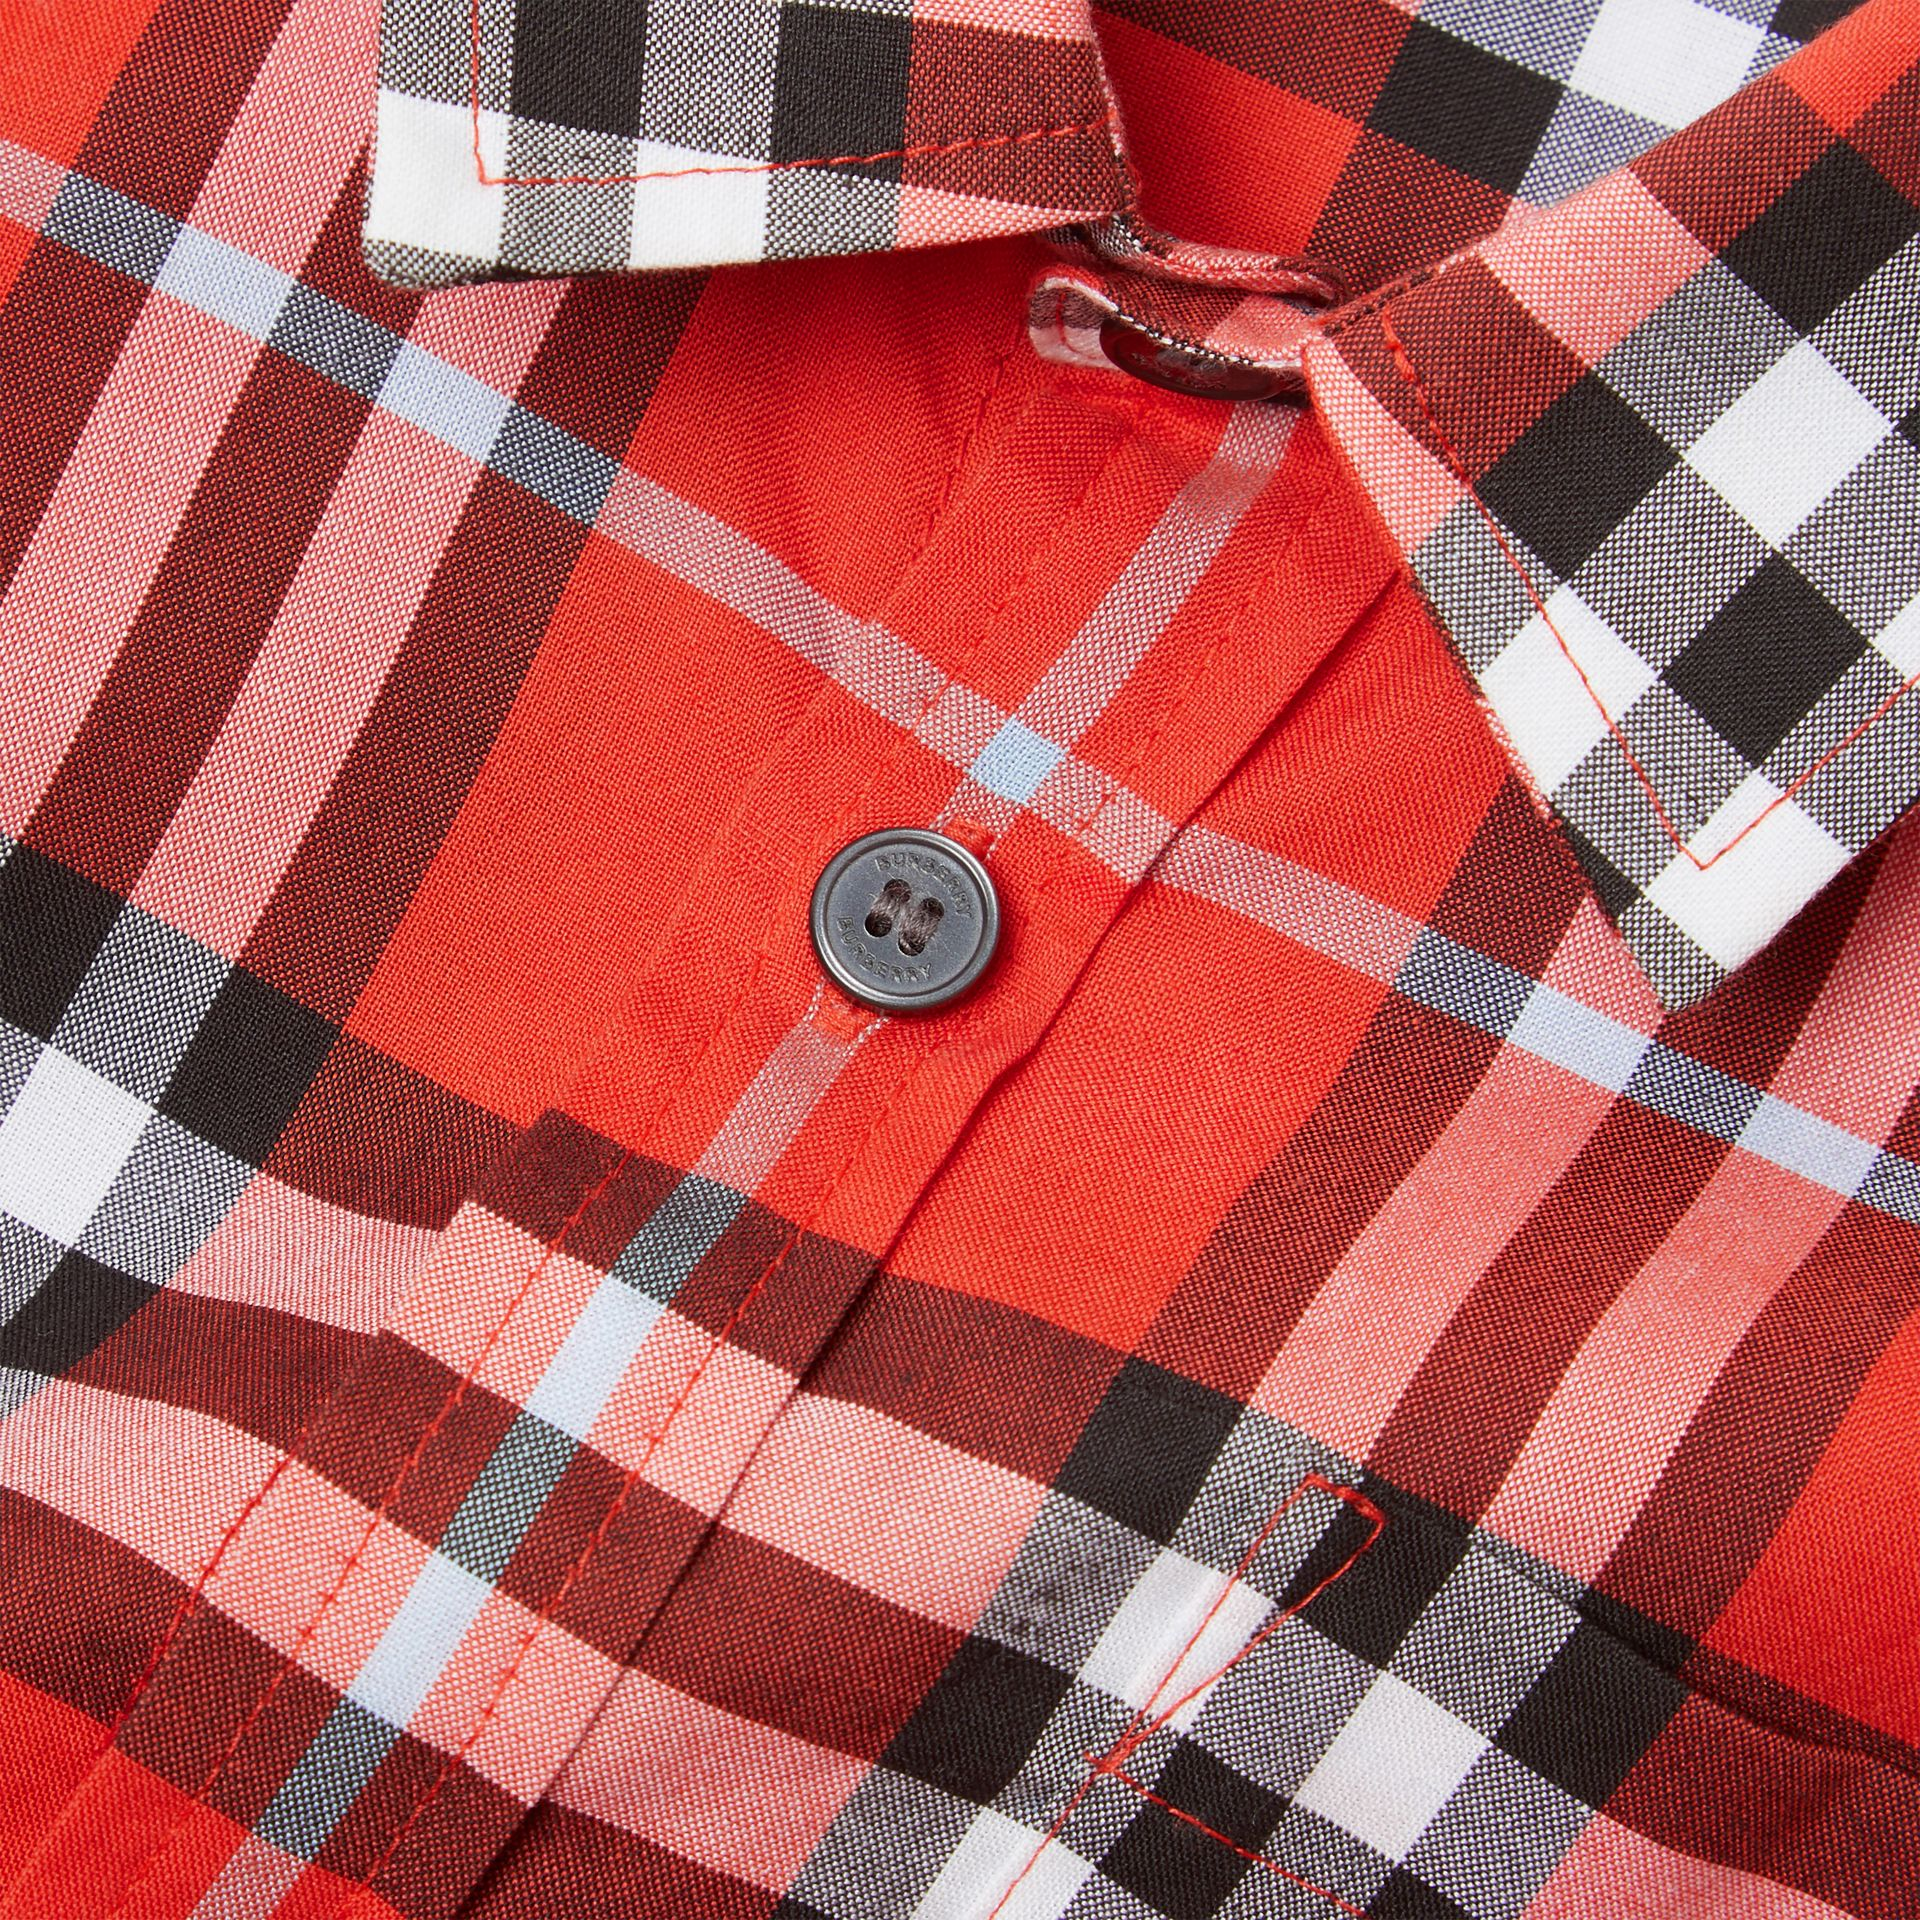 Short-sleeve Check Cotton Shirt in Orange Red | Burberry - gallery image 1